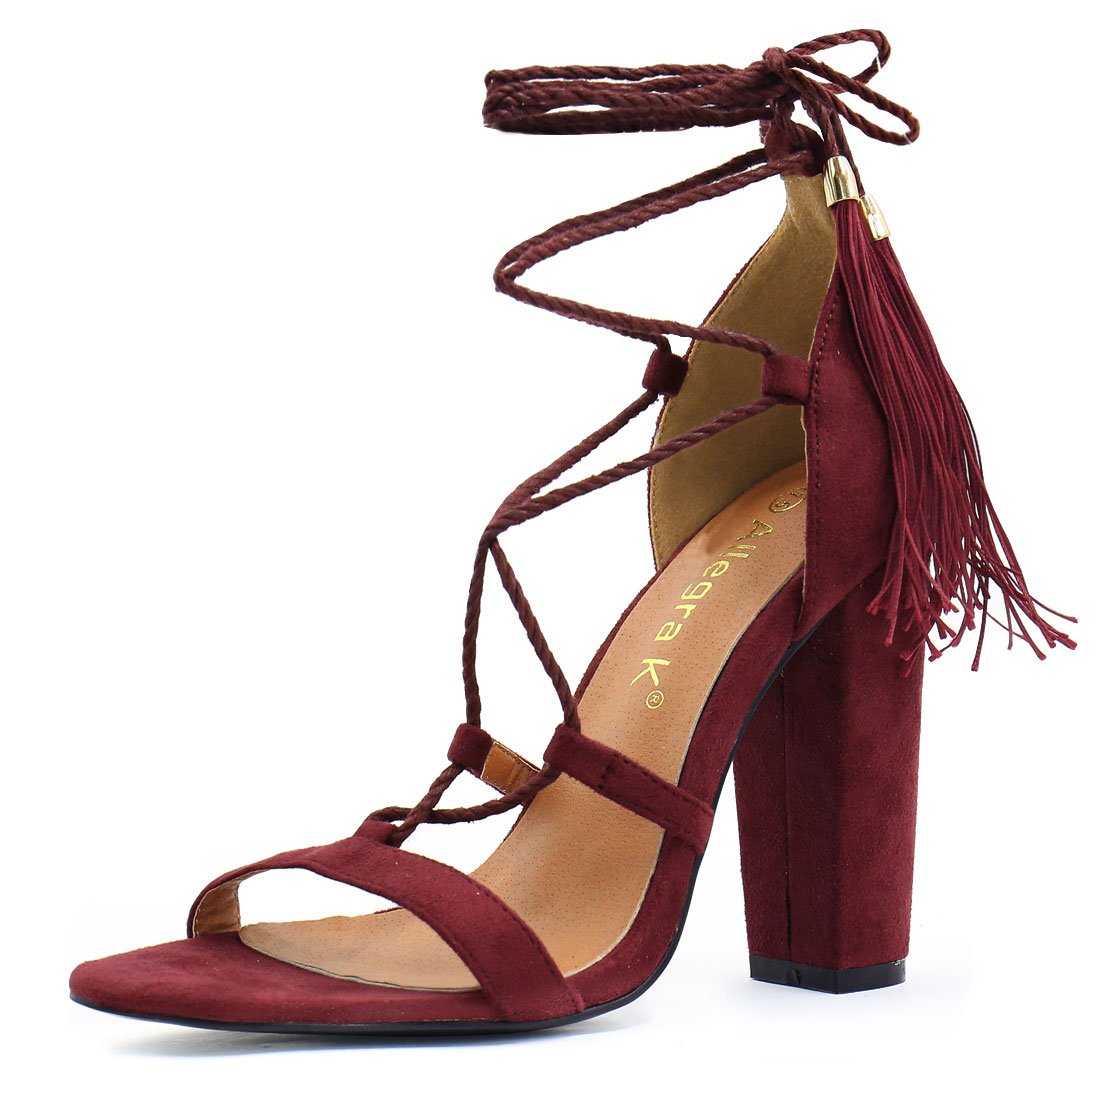 Women Chunky High Heel Tassel Closure Lace Up Sandals Wine US 9.5